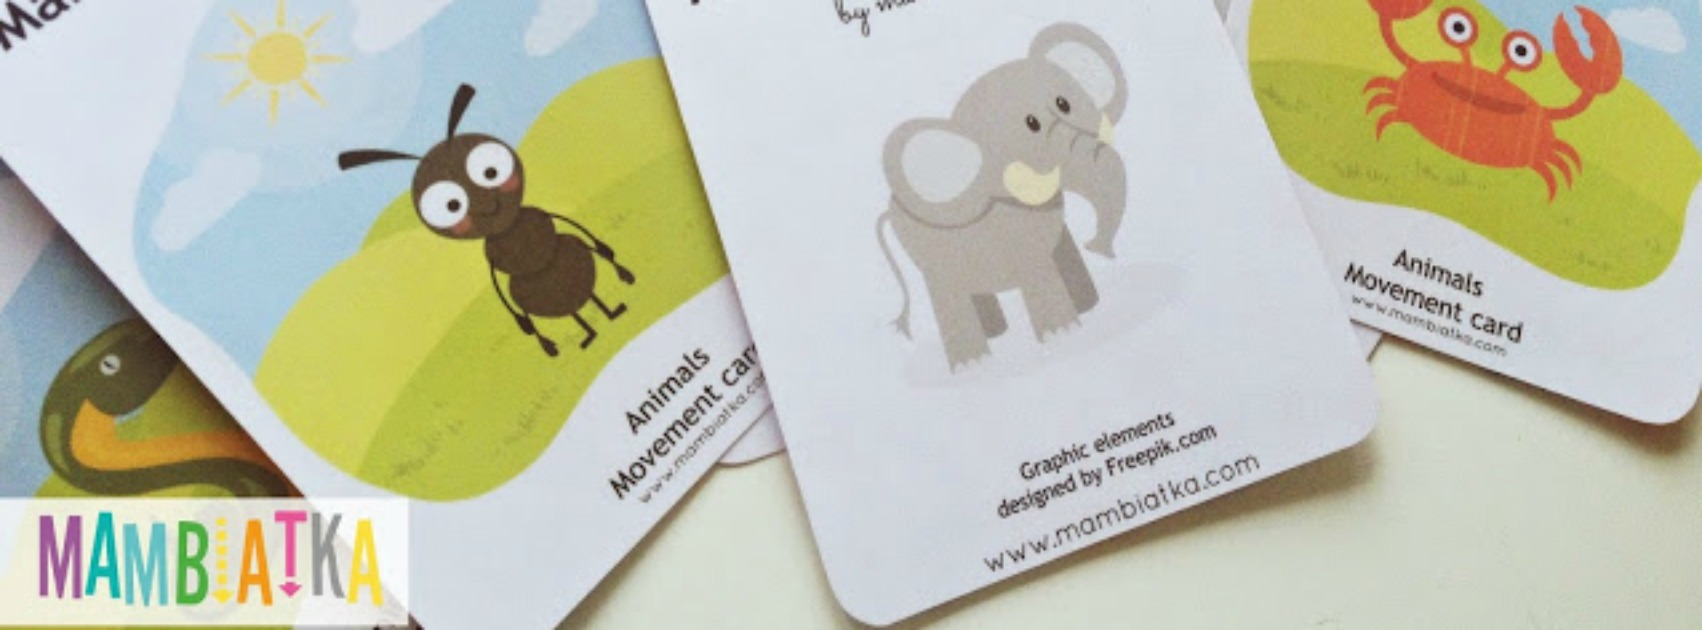 animals movement cards02